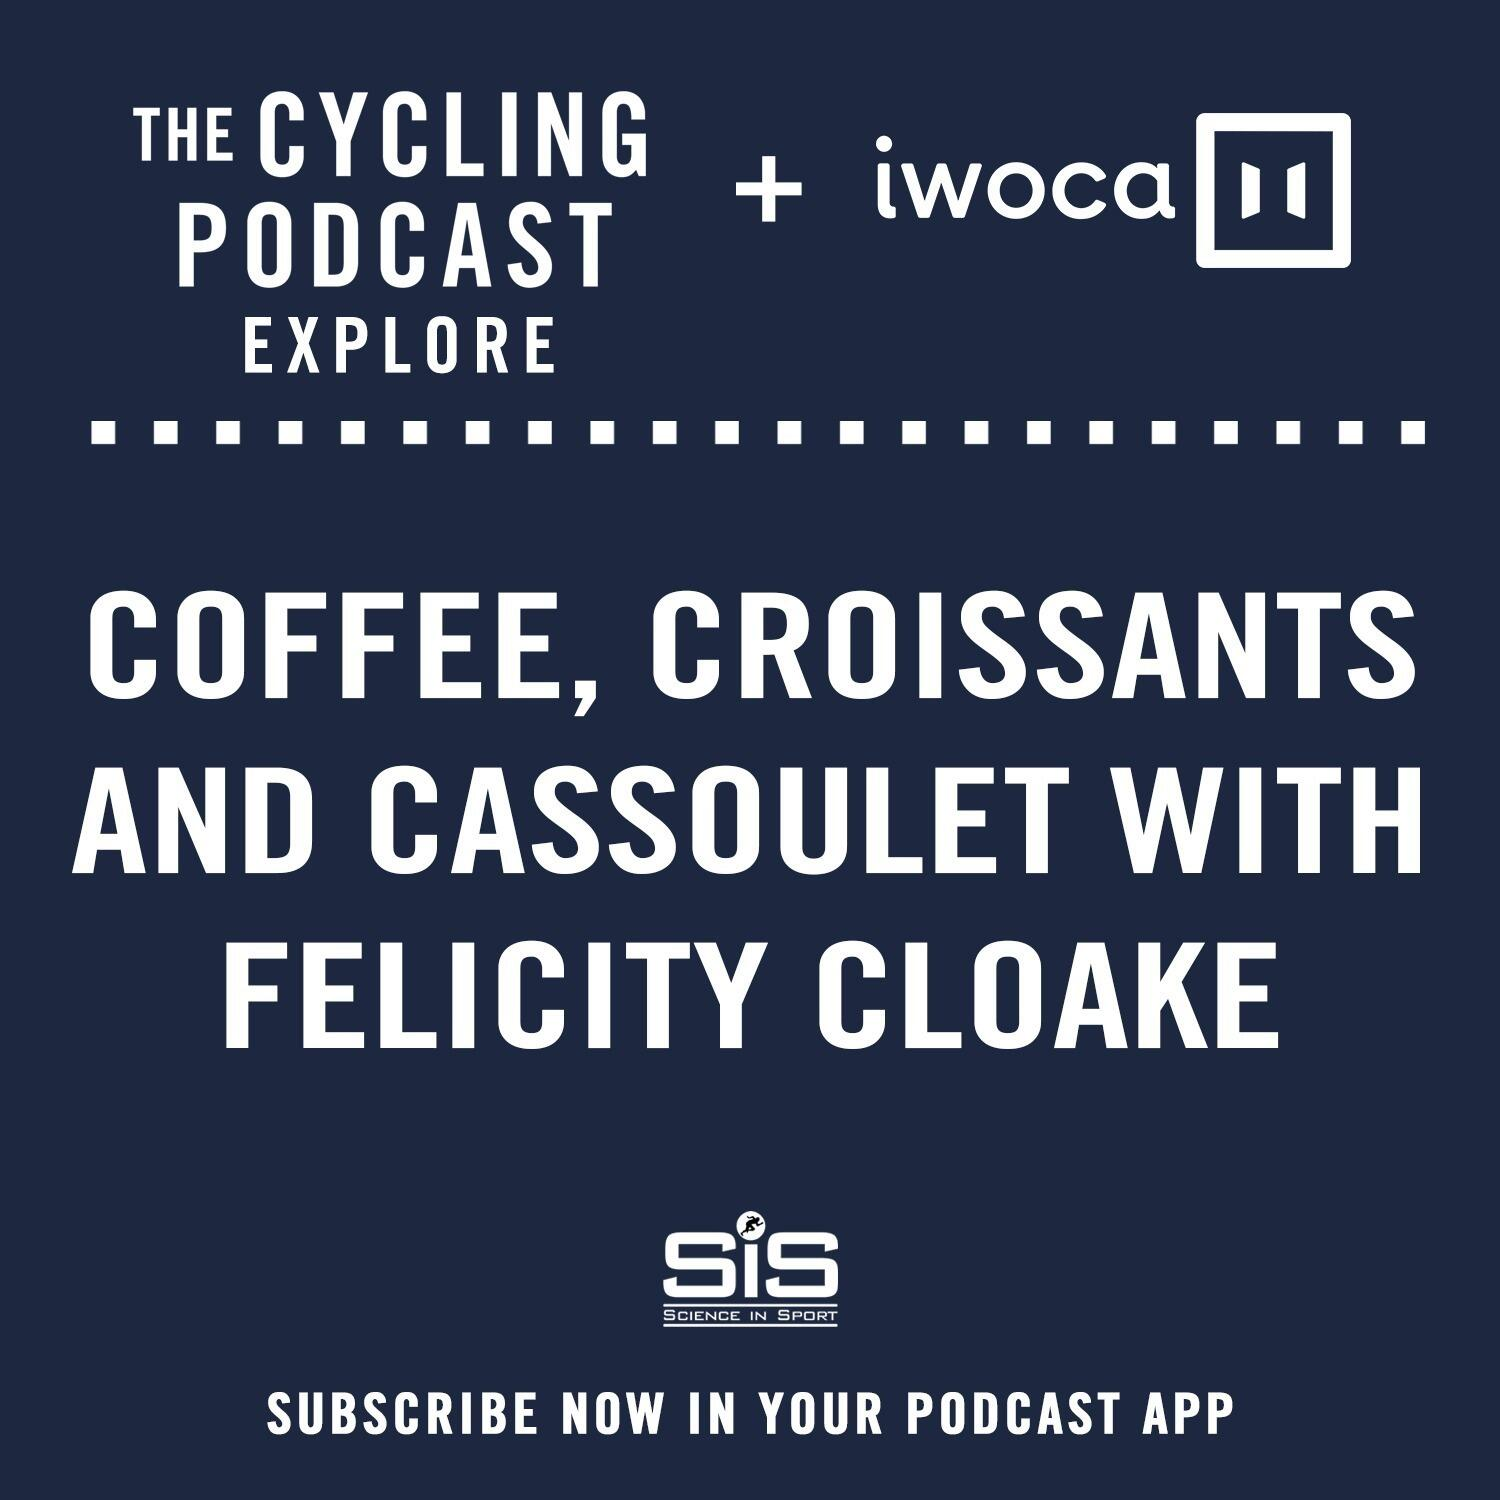 23: Explore | Coffee, croissants and cassoulet with Felicity Cloake